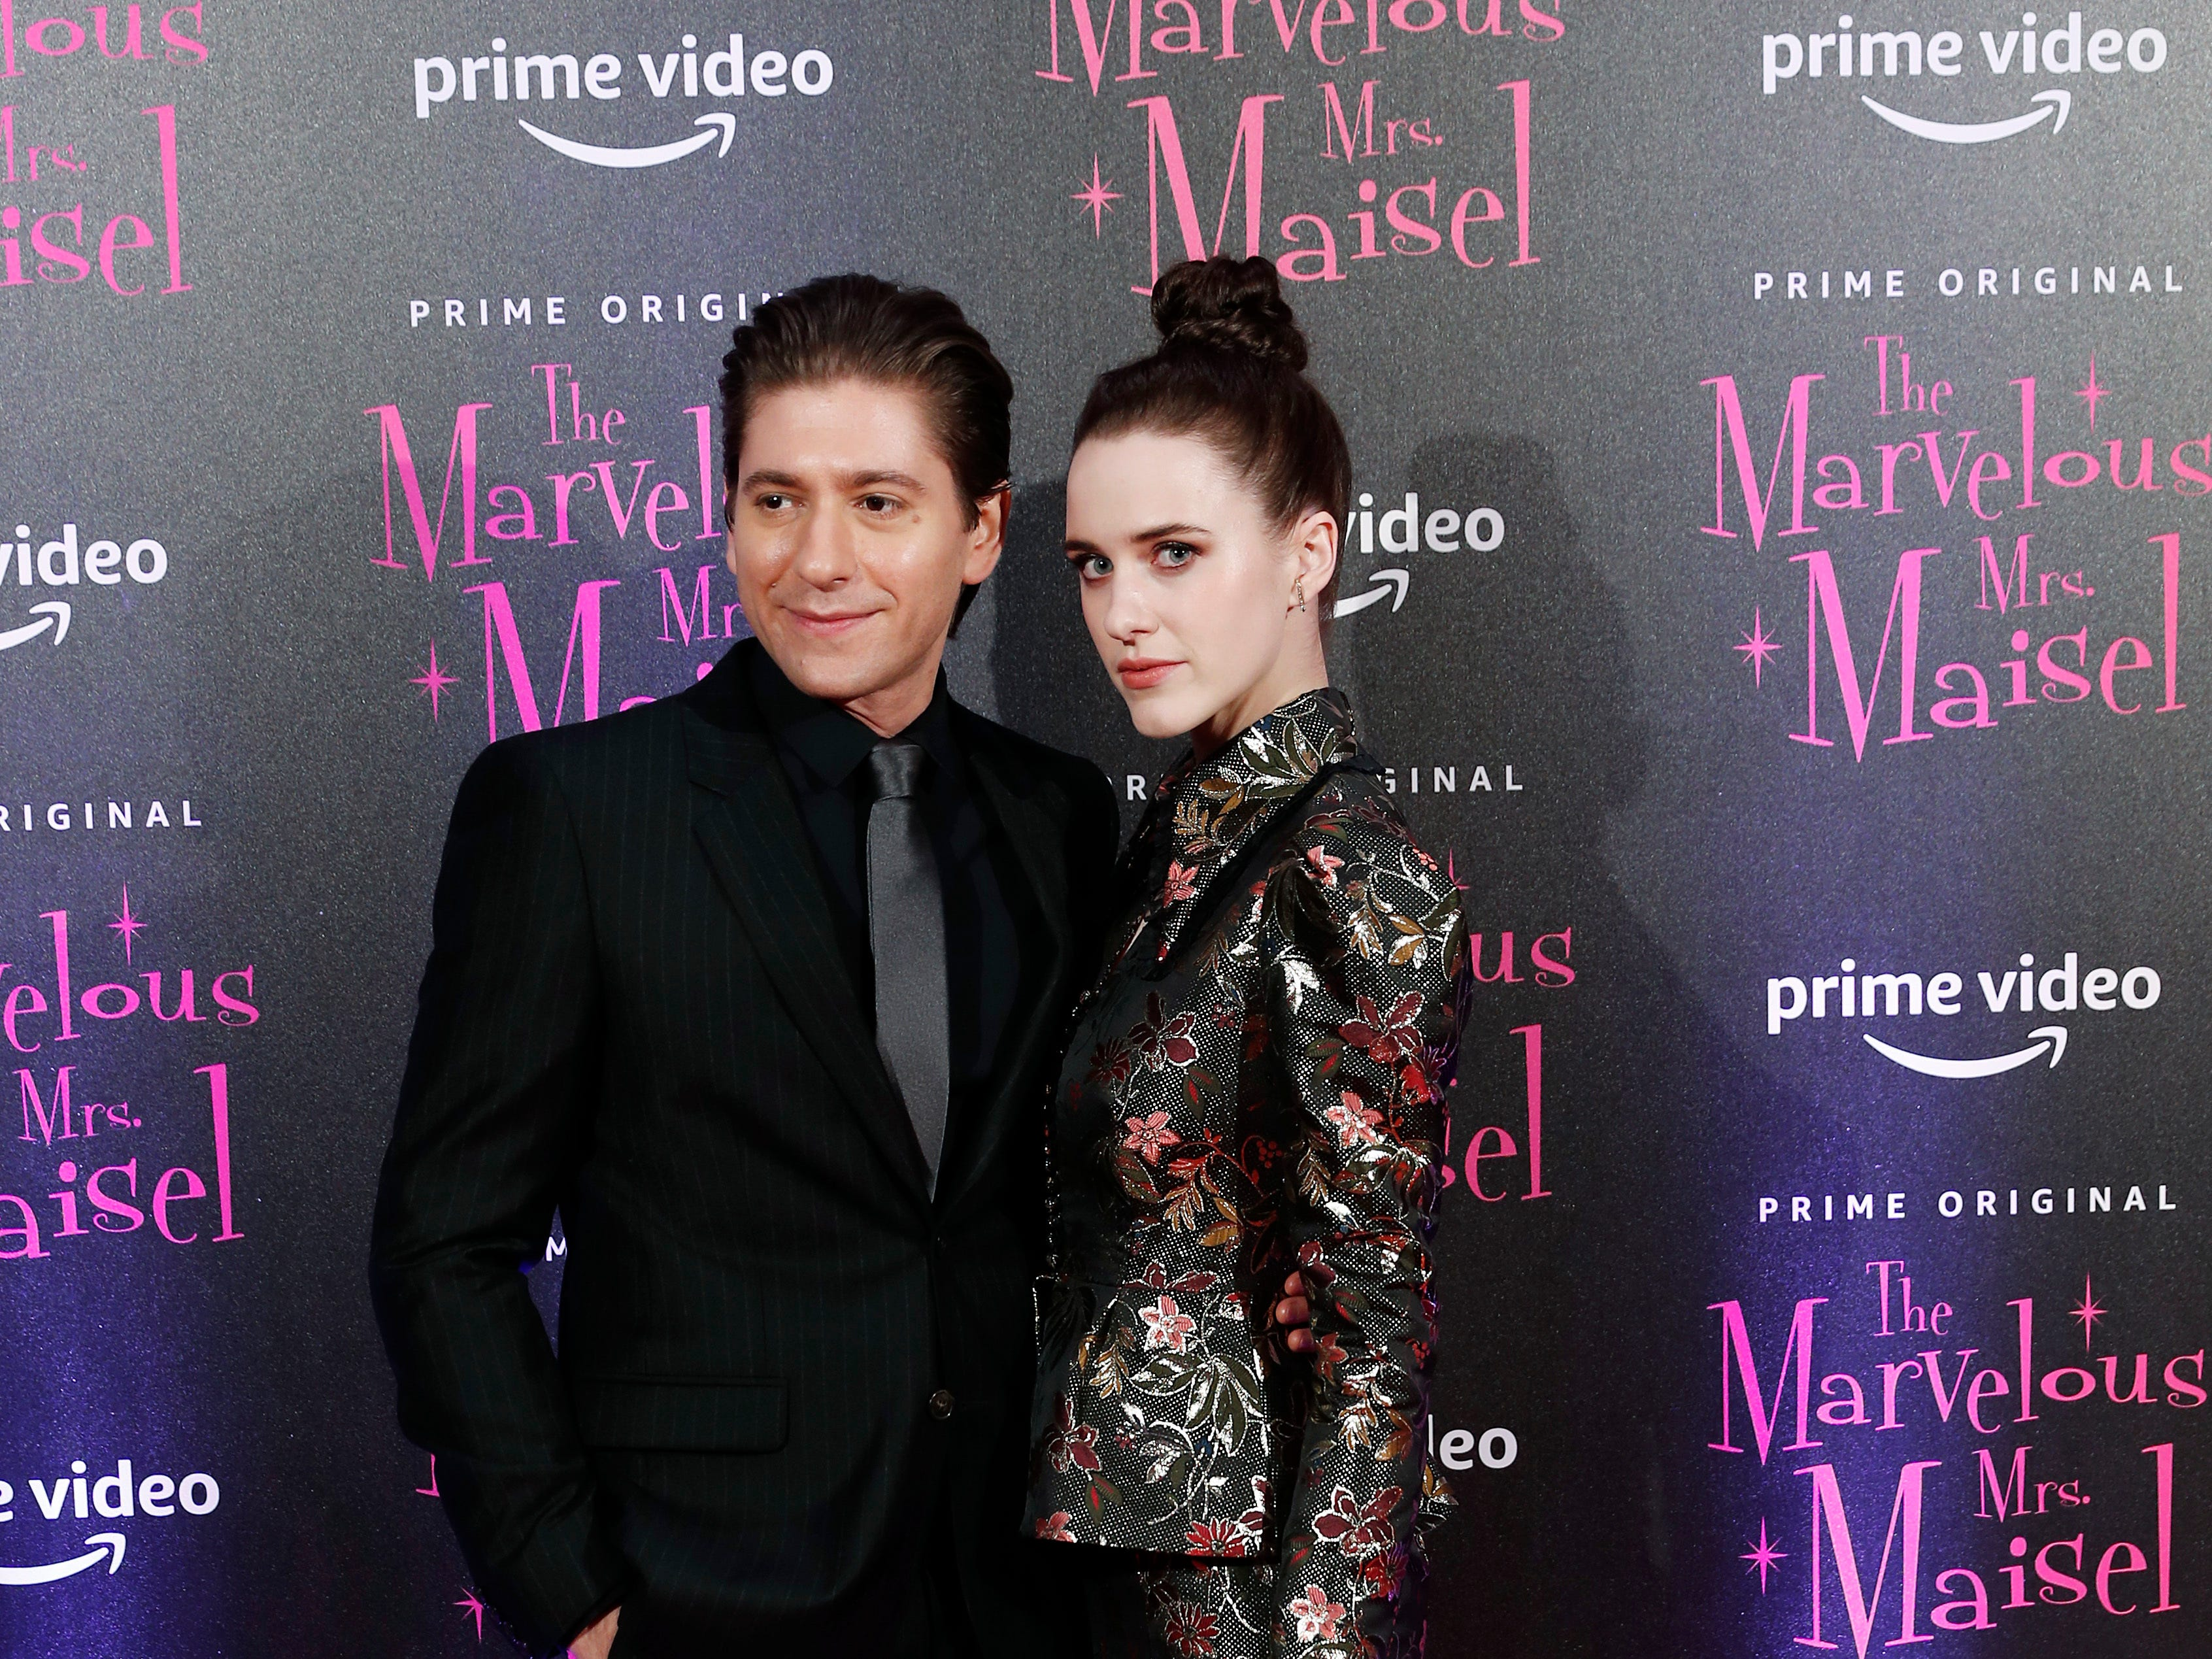 """Actress Rachel Brosnahan, right, and actor Michael Zegen pose for photographers at the European Premiere of """"The Marvelous Mrs. Maisel"""" season 2, in Milan, Italy, Monday, Dec. 3, 2018."""